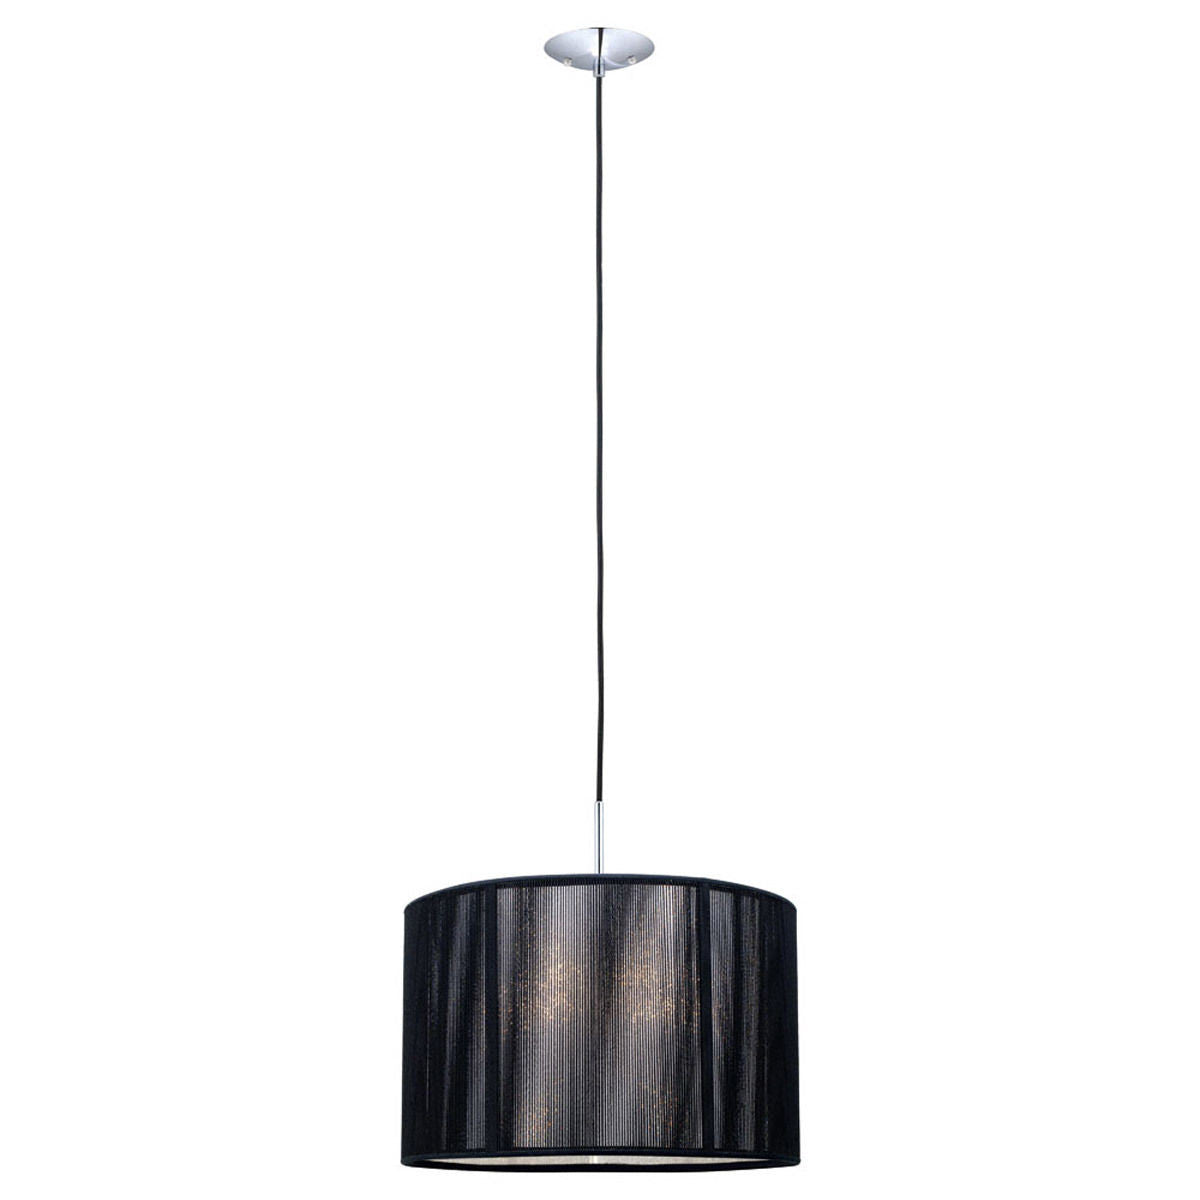 Image Eglo Lighting 20102A Fabienne Collection One Light Pendant Chandelier in Chrome Finish cxpqddrajlpeh Eglo Lighting Eglo Lighting 20102A Orders